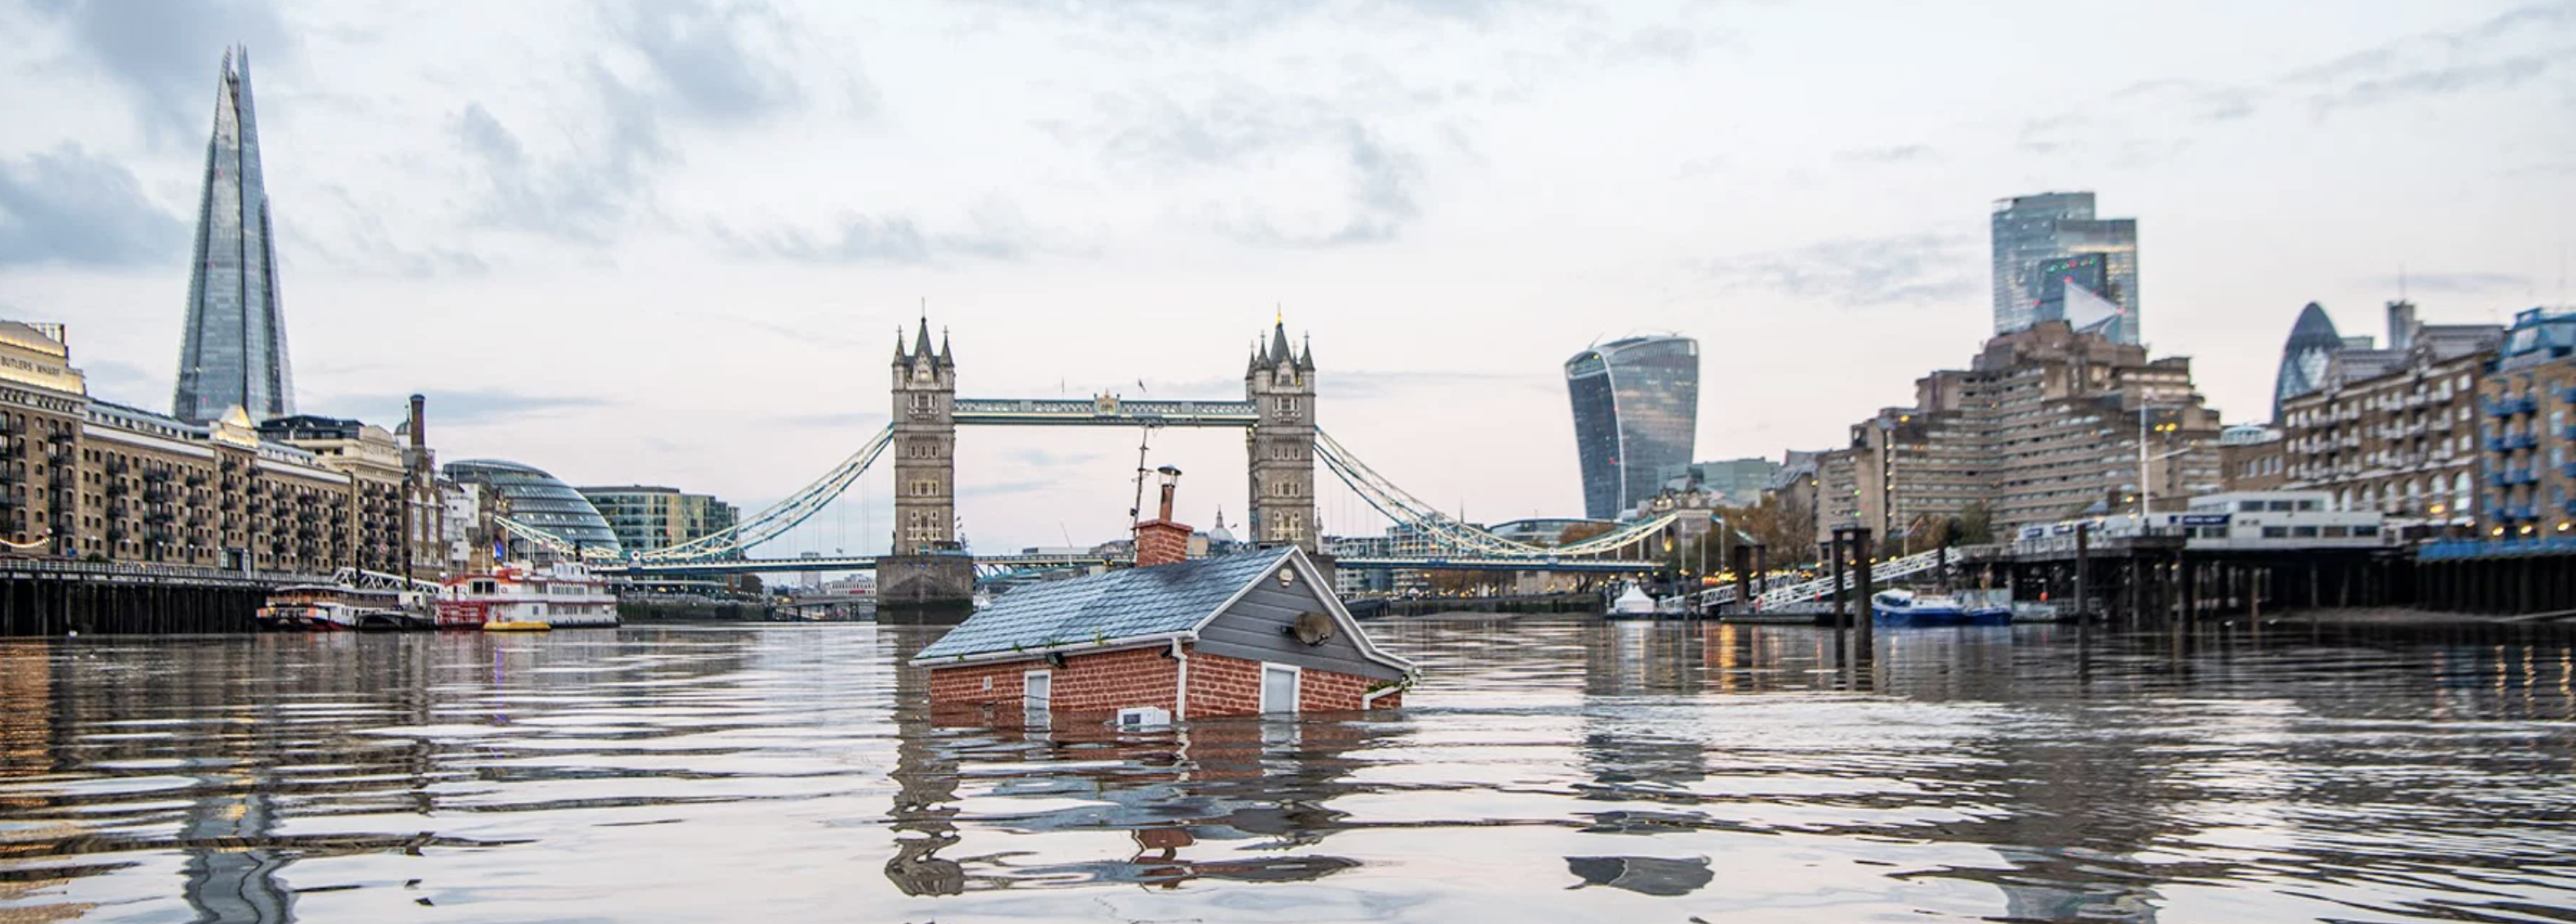 London, the sinking house in the Thames